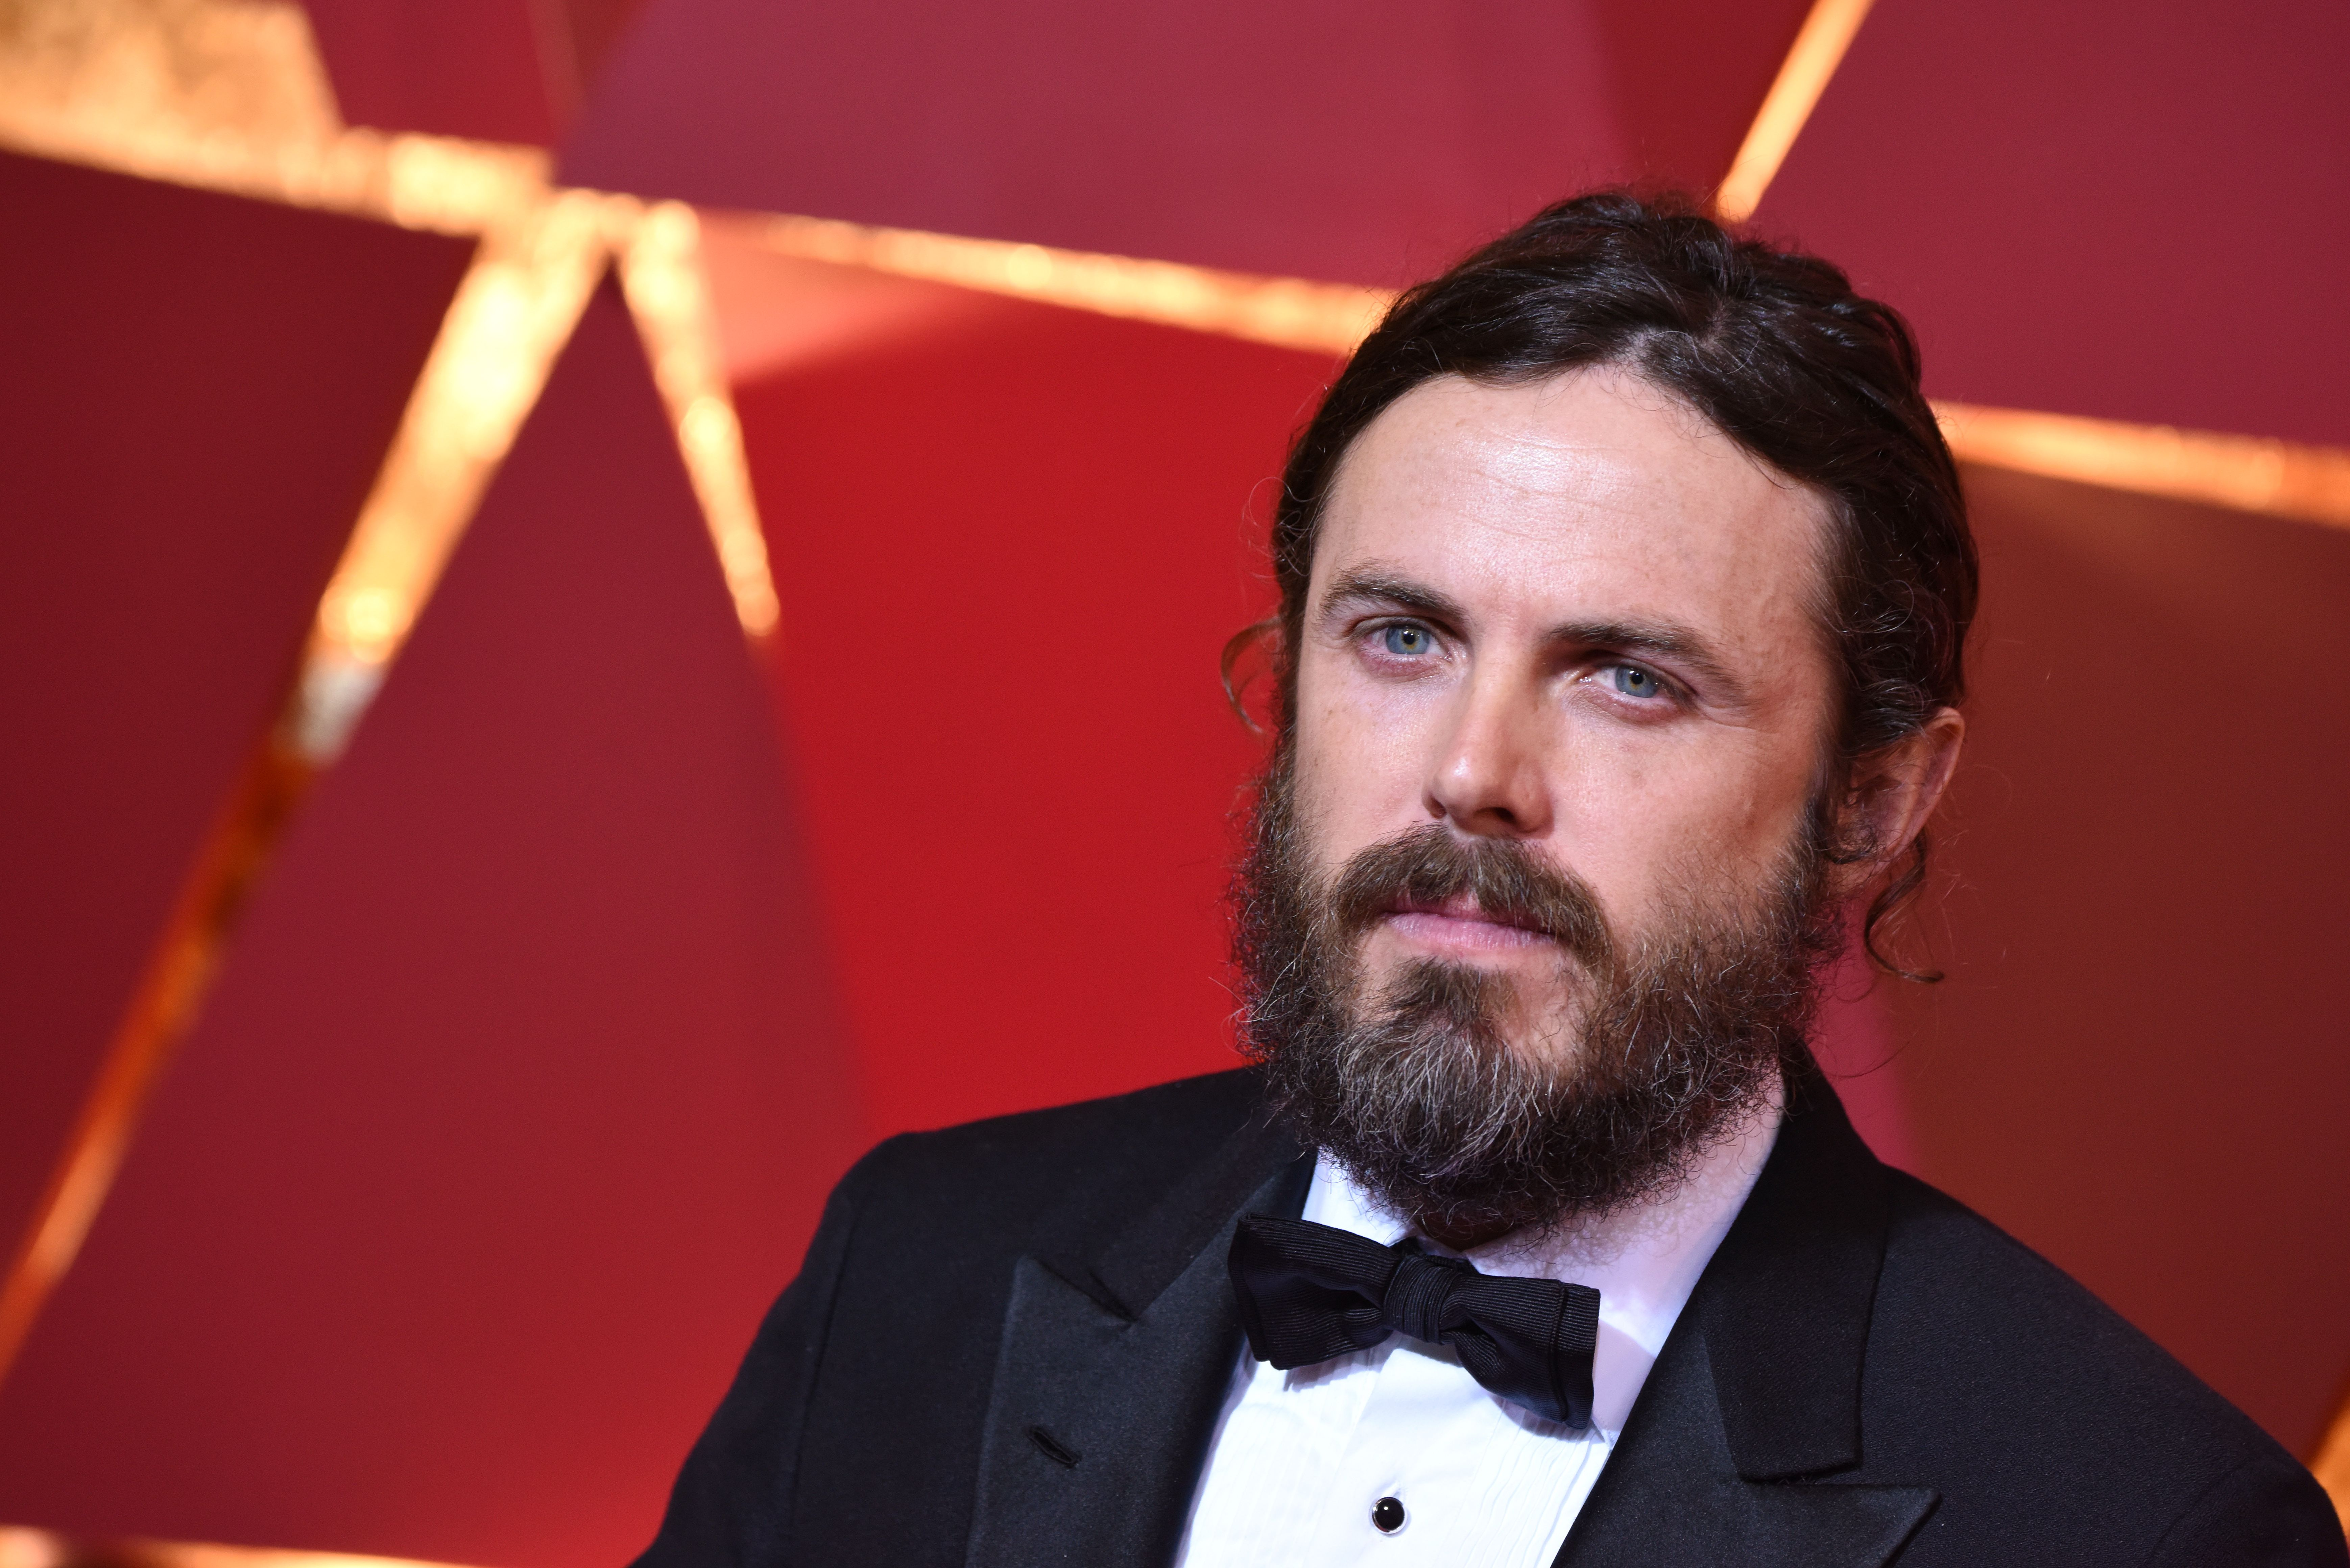 Casey Affleck Addresses Sexual Harassment Allegations After Oscar Win Indiewire,Beauty And The Beast Location In France